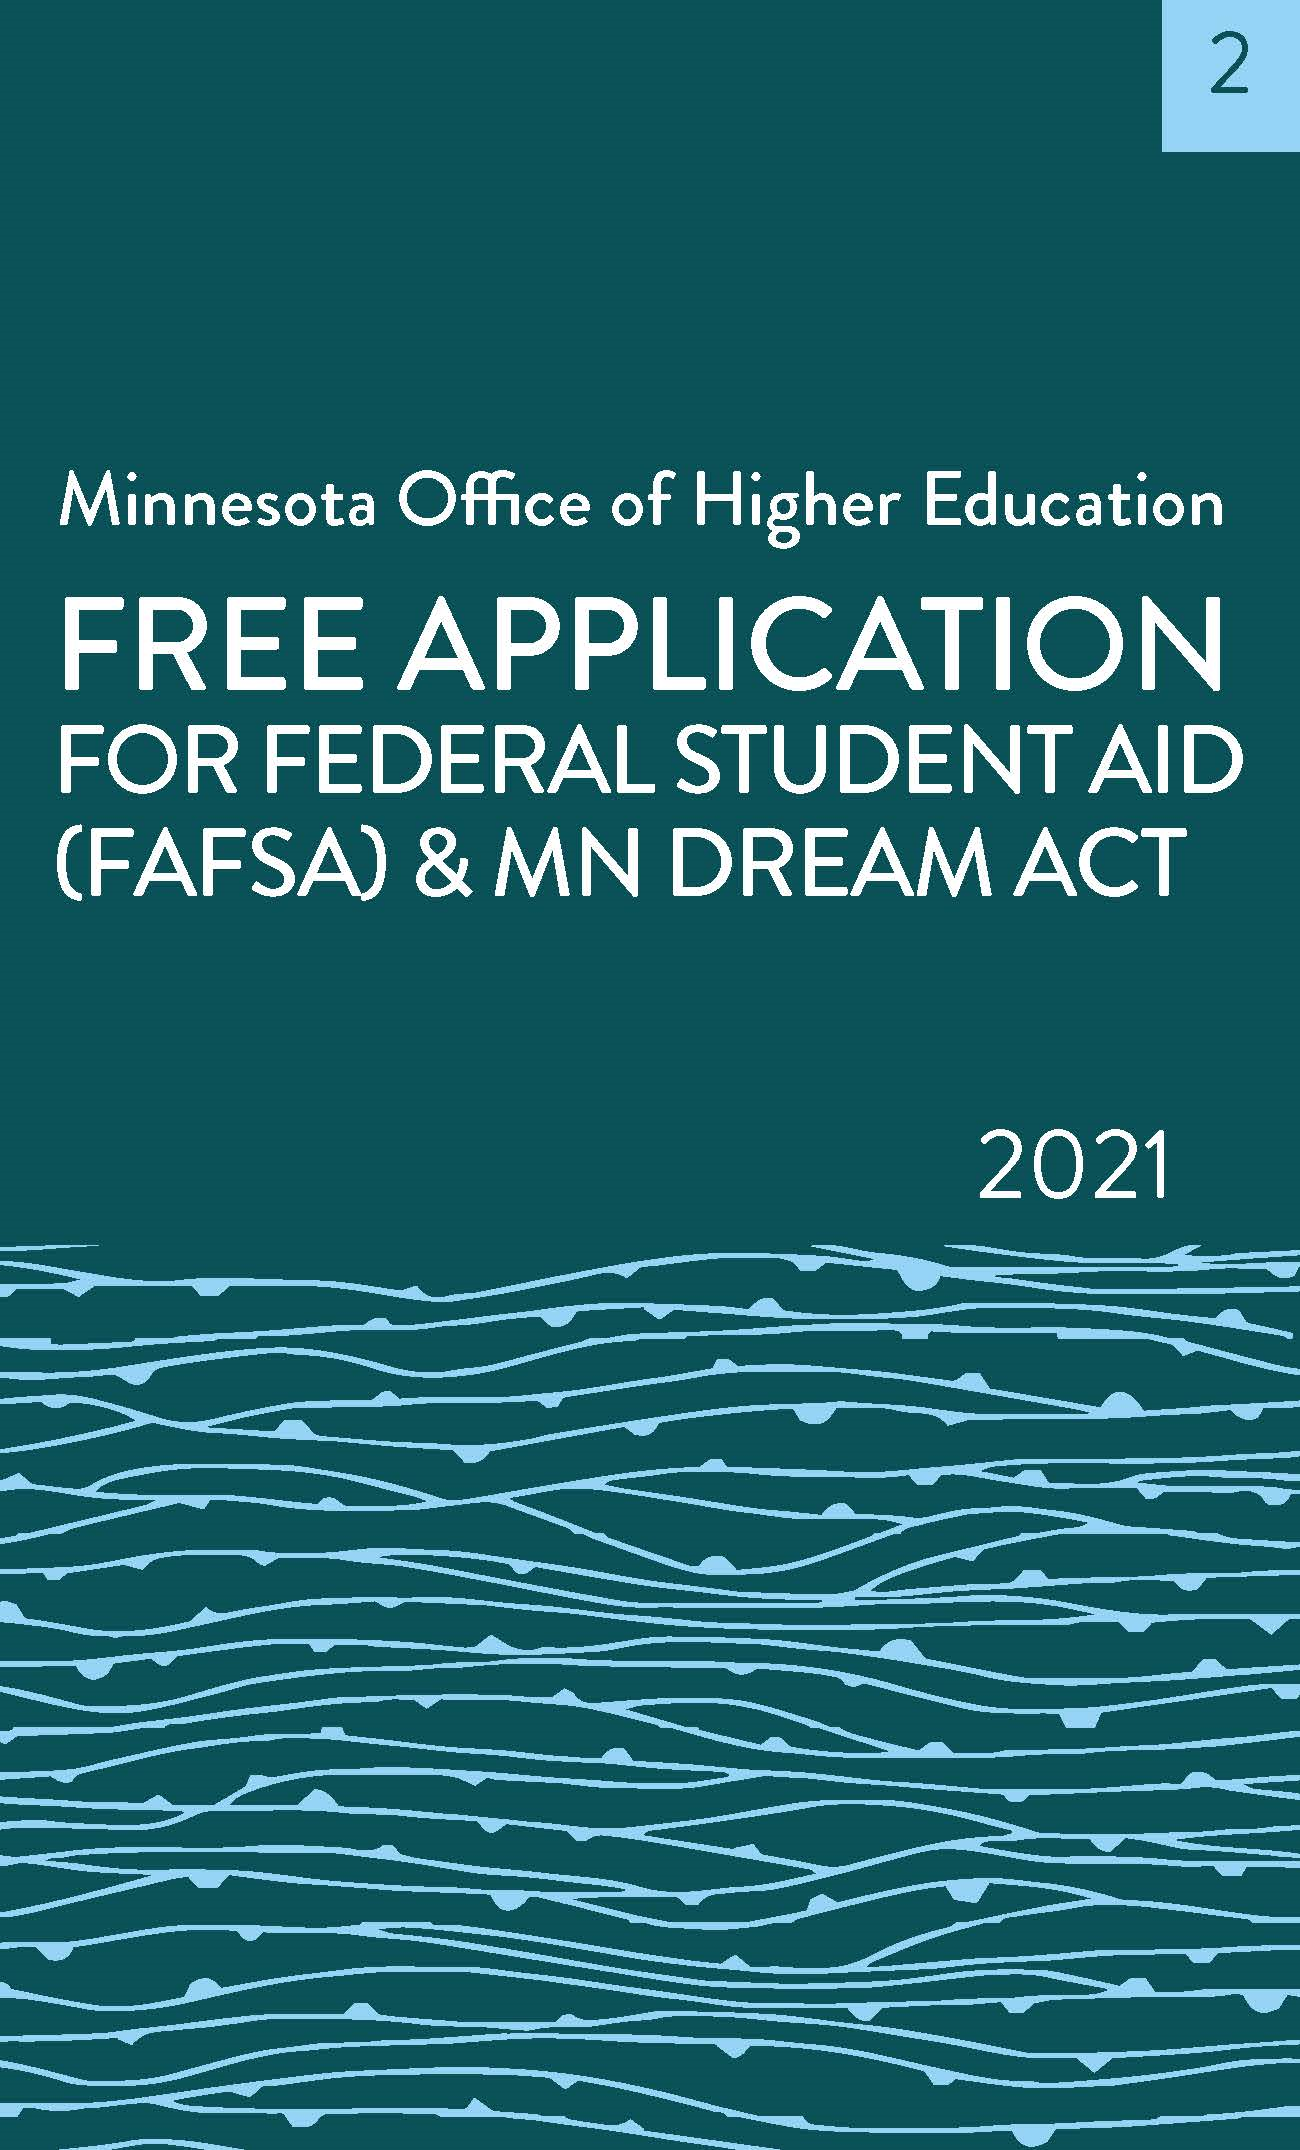 Free Application for Federal Student Aid (FAFSA) & MN Dream Act